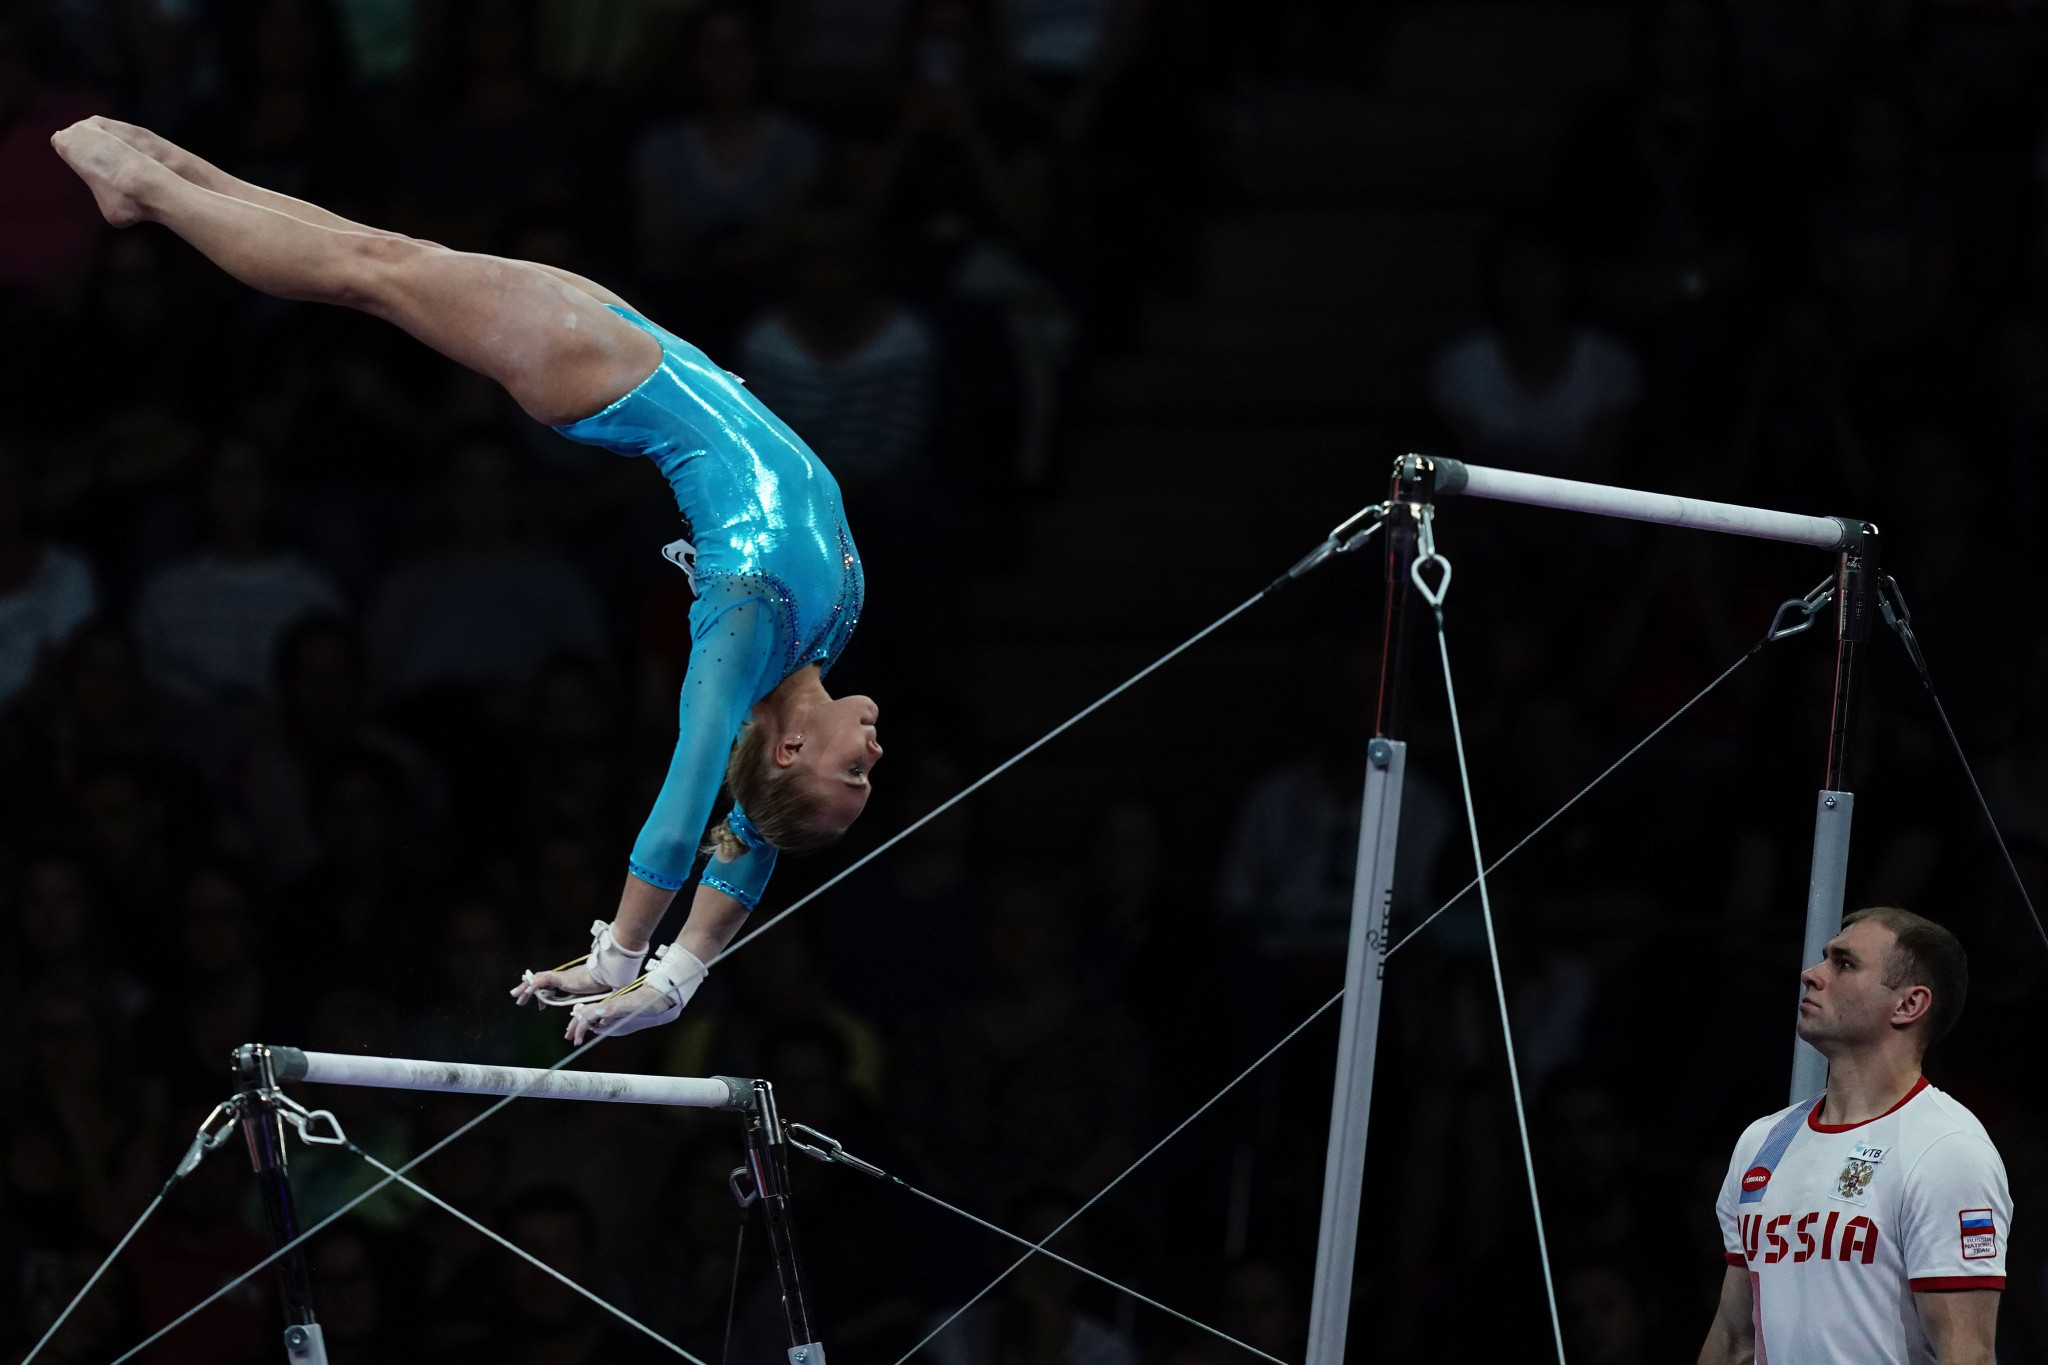 Russia latest country to withdraw from European Artistic Gymnastics Championships